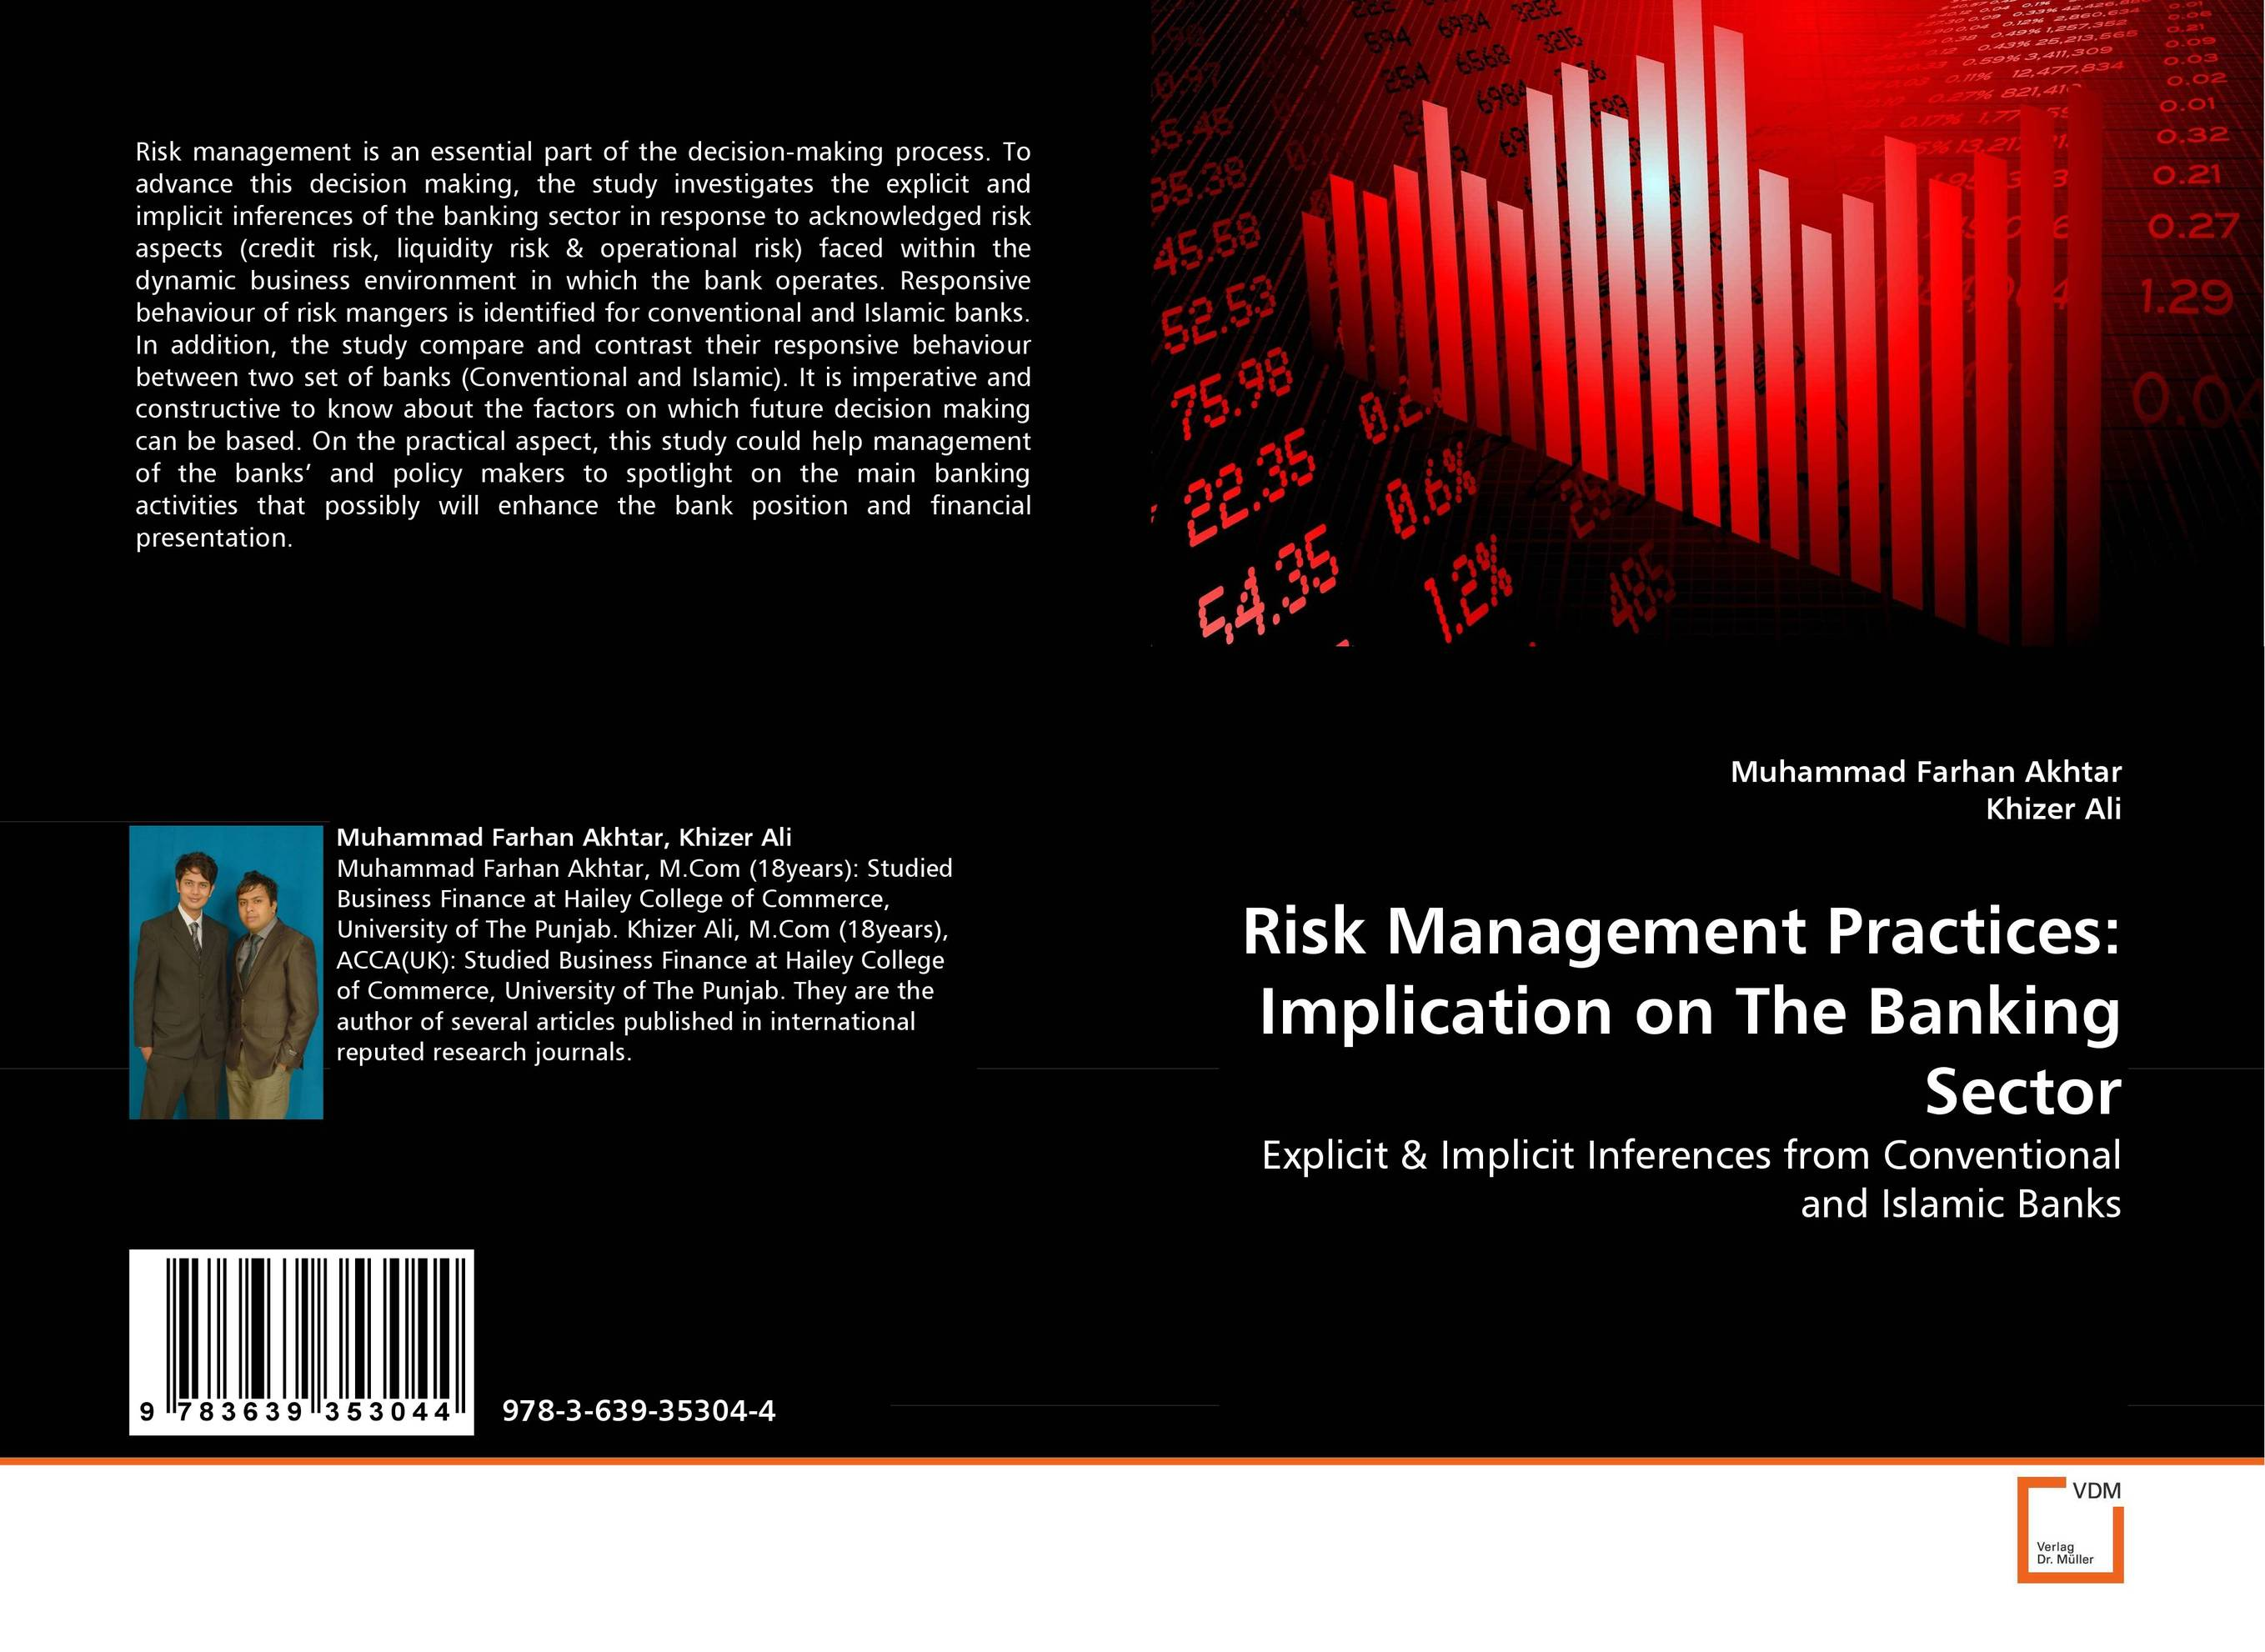 Risk Management Practices: Implication on The Banking Sector credit risk management practices